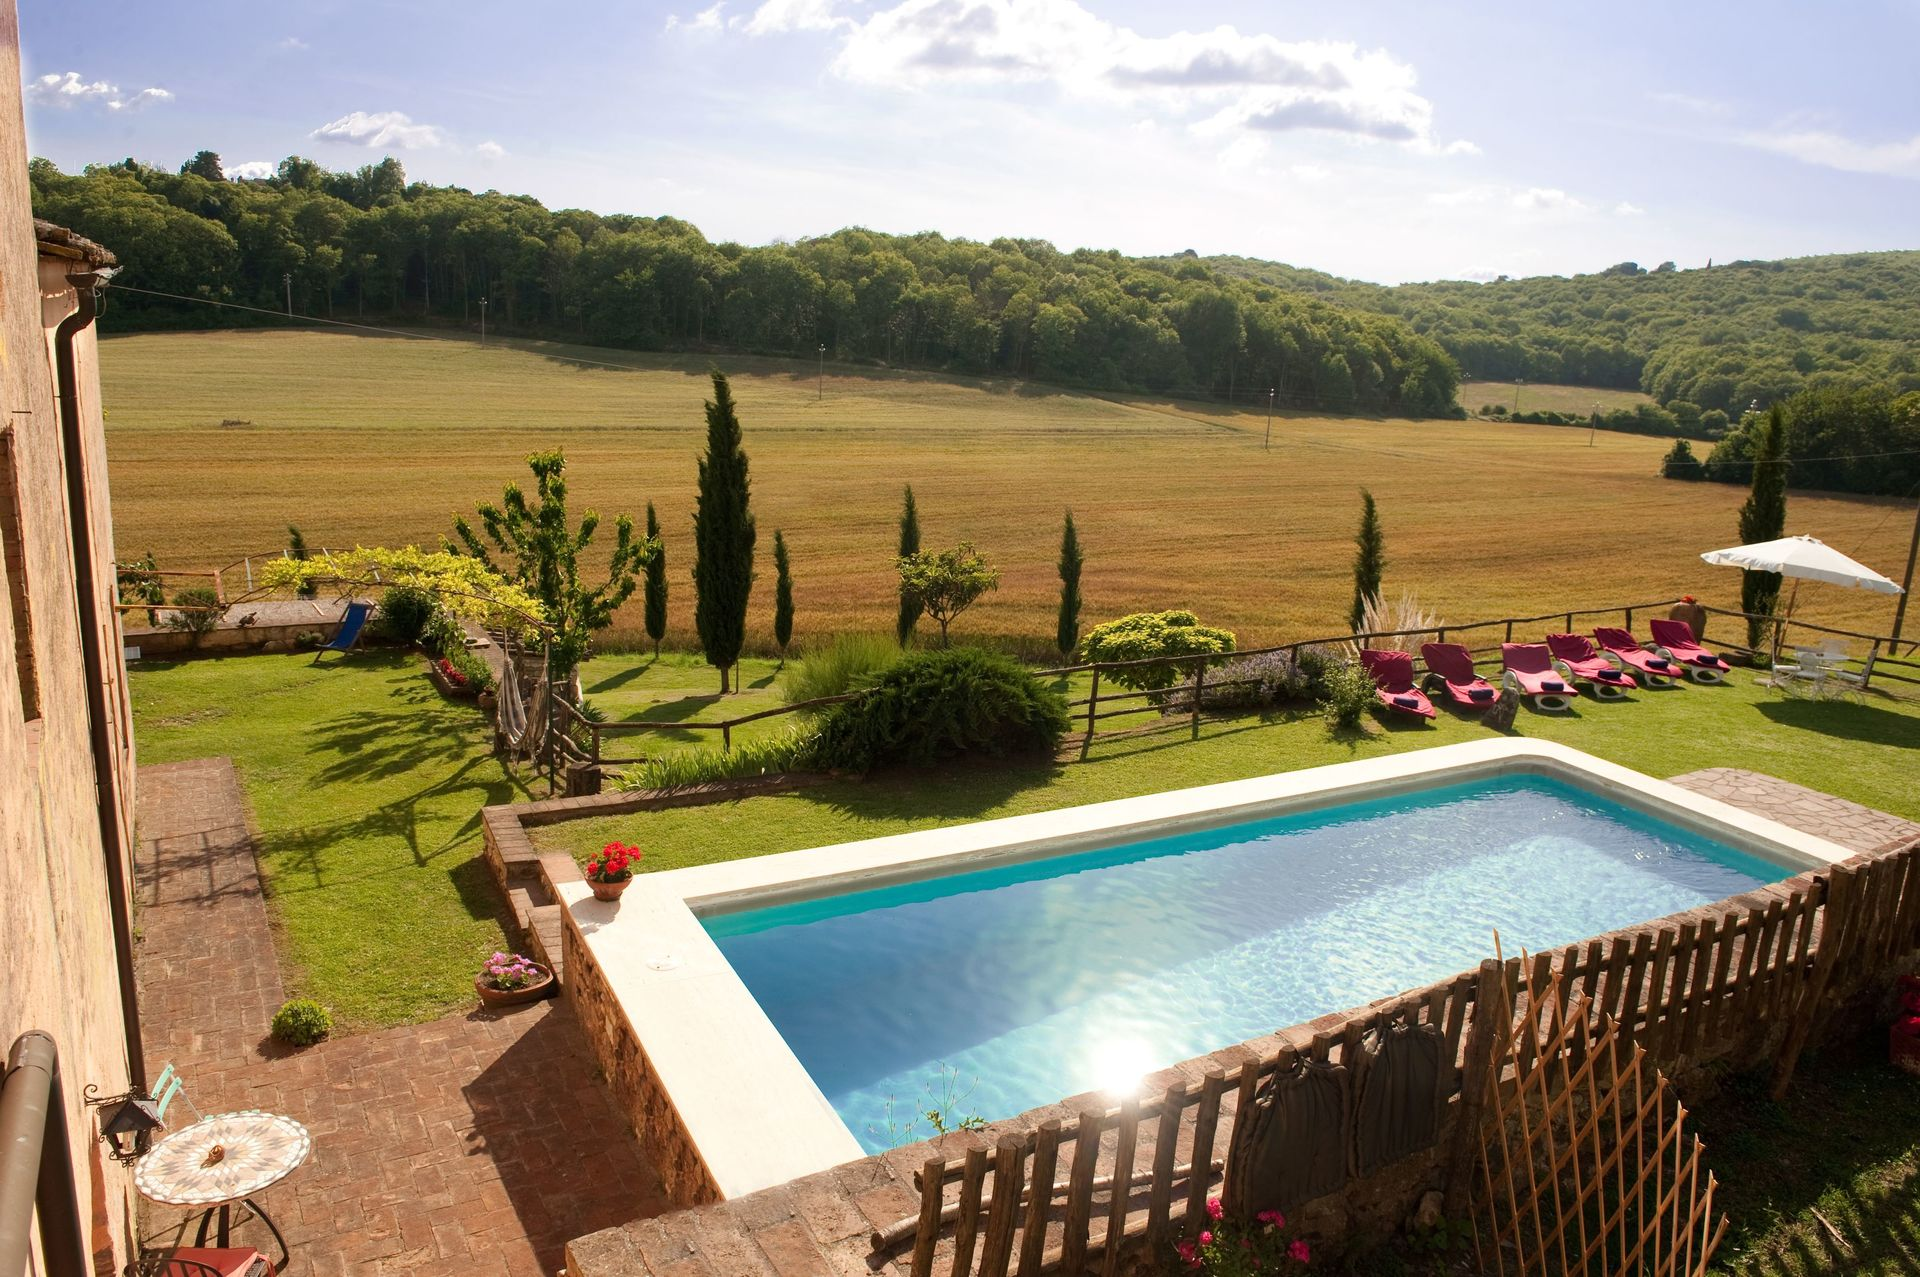 Villas Near Siena Italy villa le caggia: villa that sleeps 14 people in 7 bedrooms